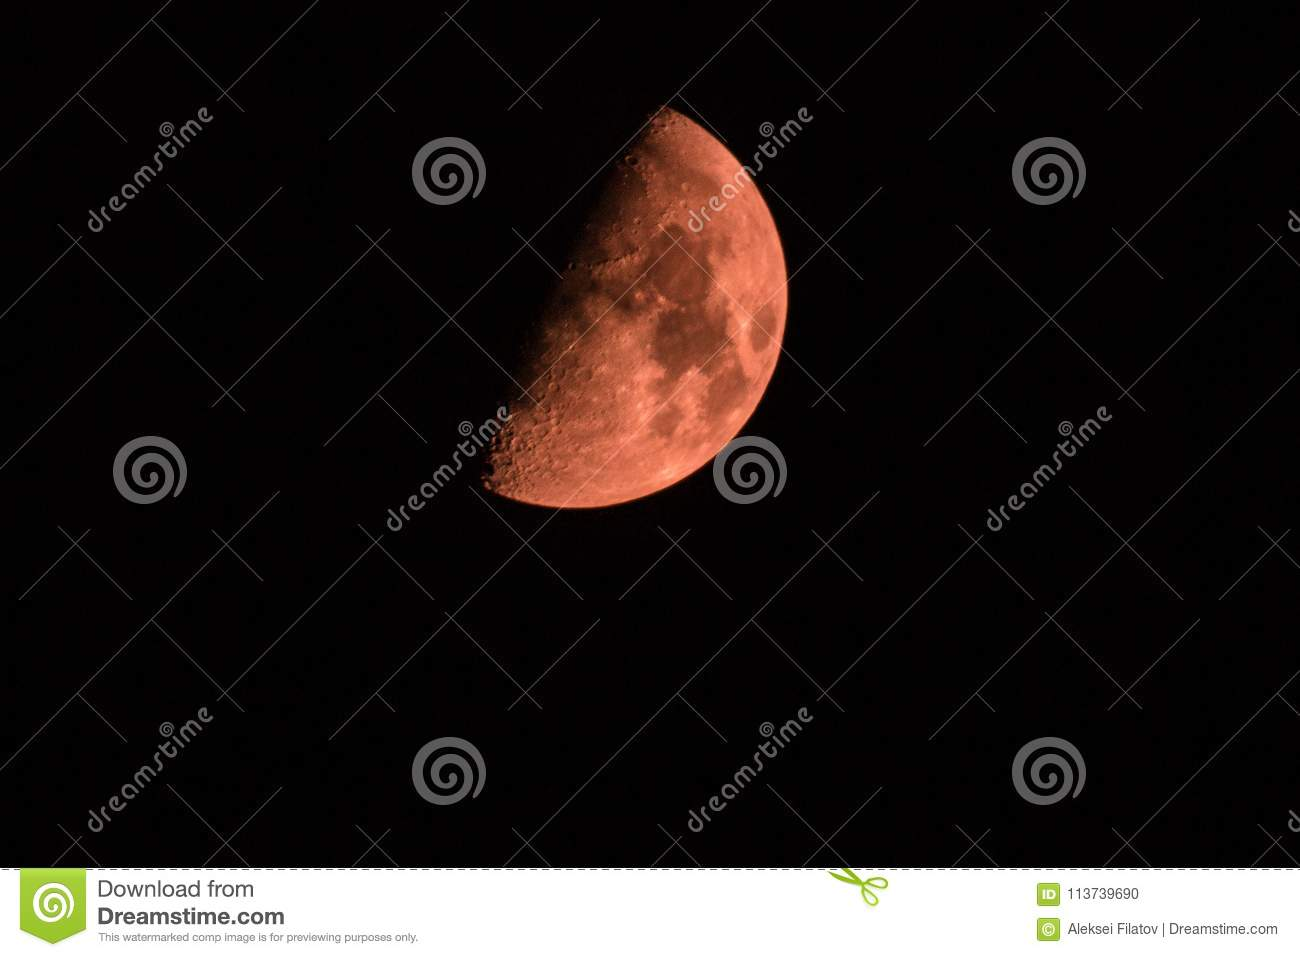 big red moon dream meaning - photo #7